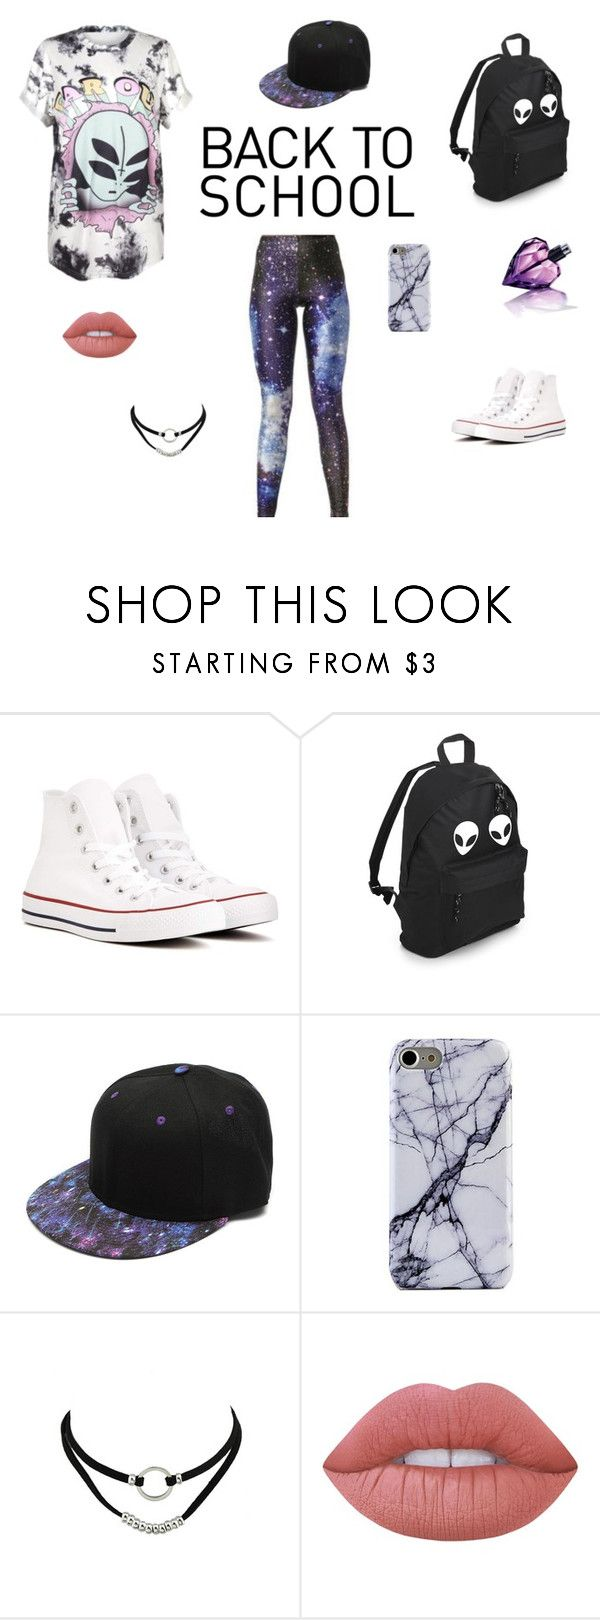 """Back to School"" by breezeshirt on Polyvore featuring Converse, Lime Crime, Diesel, GetTheLook, Summer, school and grunge"